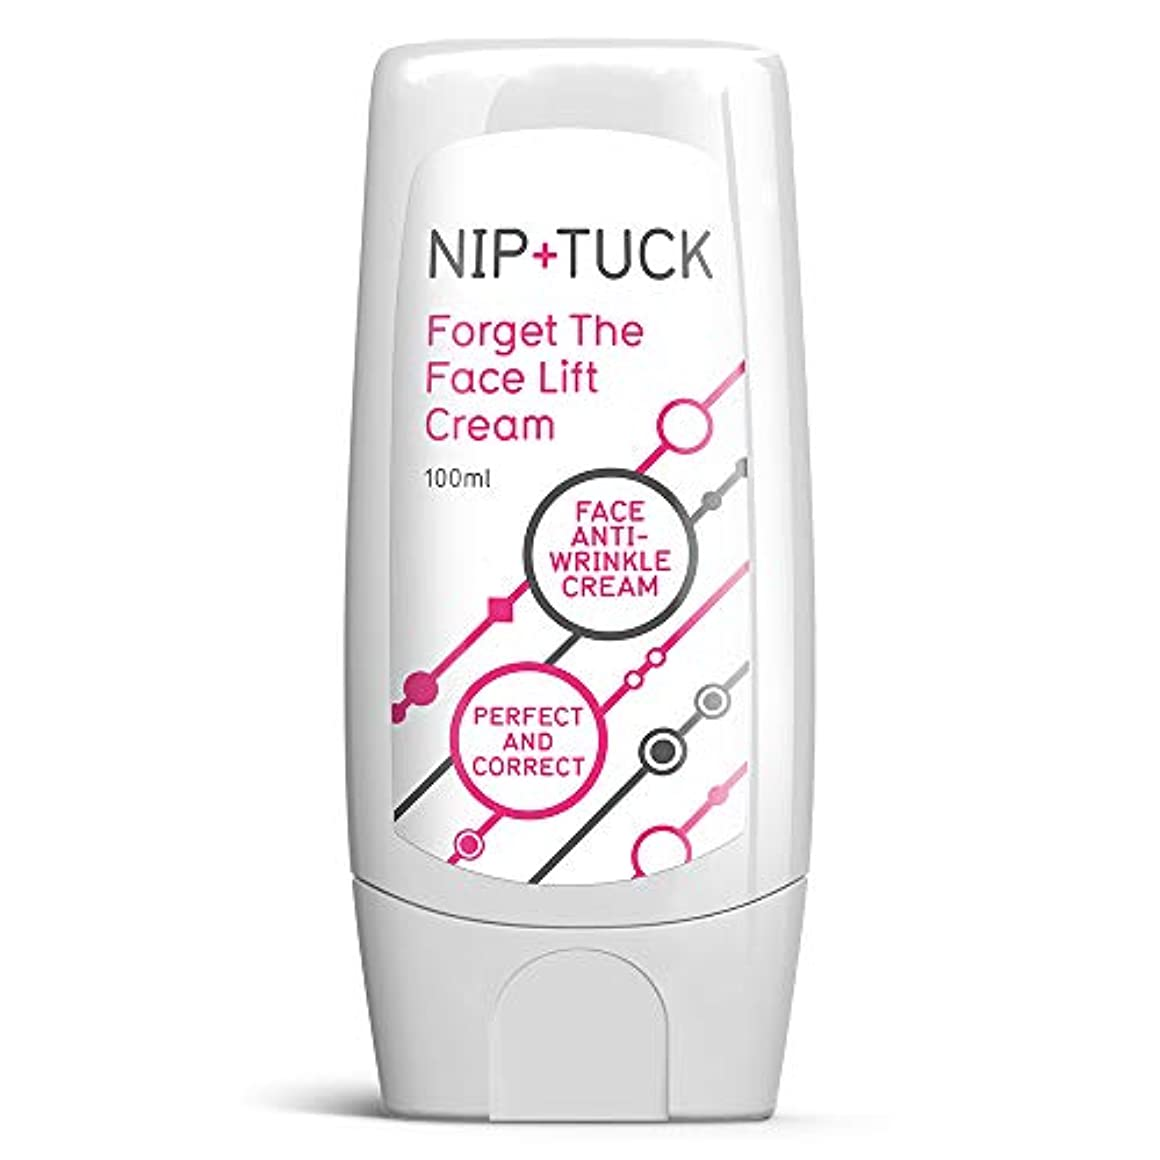 脅威モッキンバード習慣NIP & TUCK FORGET THE FACELIFT CREAM Nippu& takku wa, anchikurinkufeisu& anchirinkurukurīmufāmu& 若く見える肌を